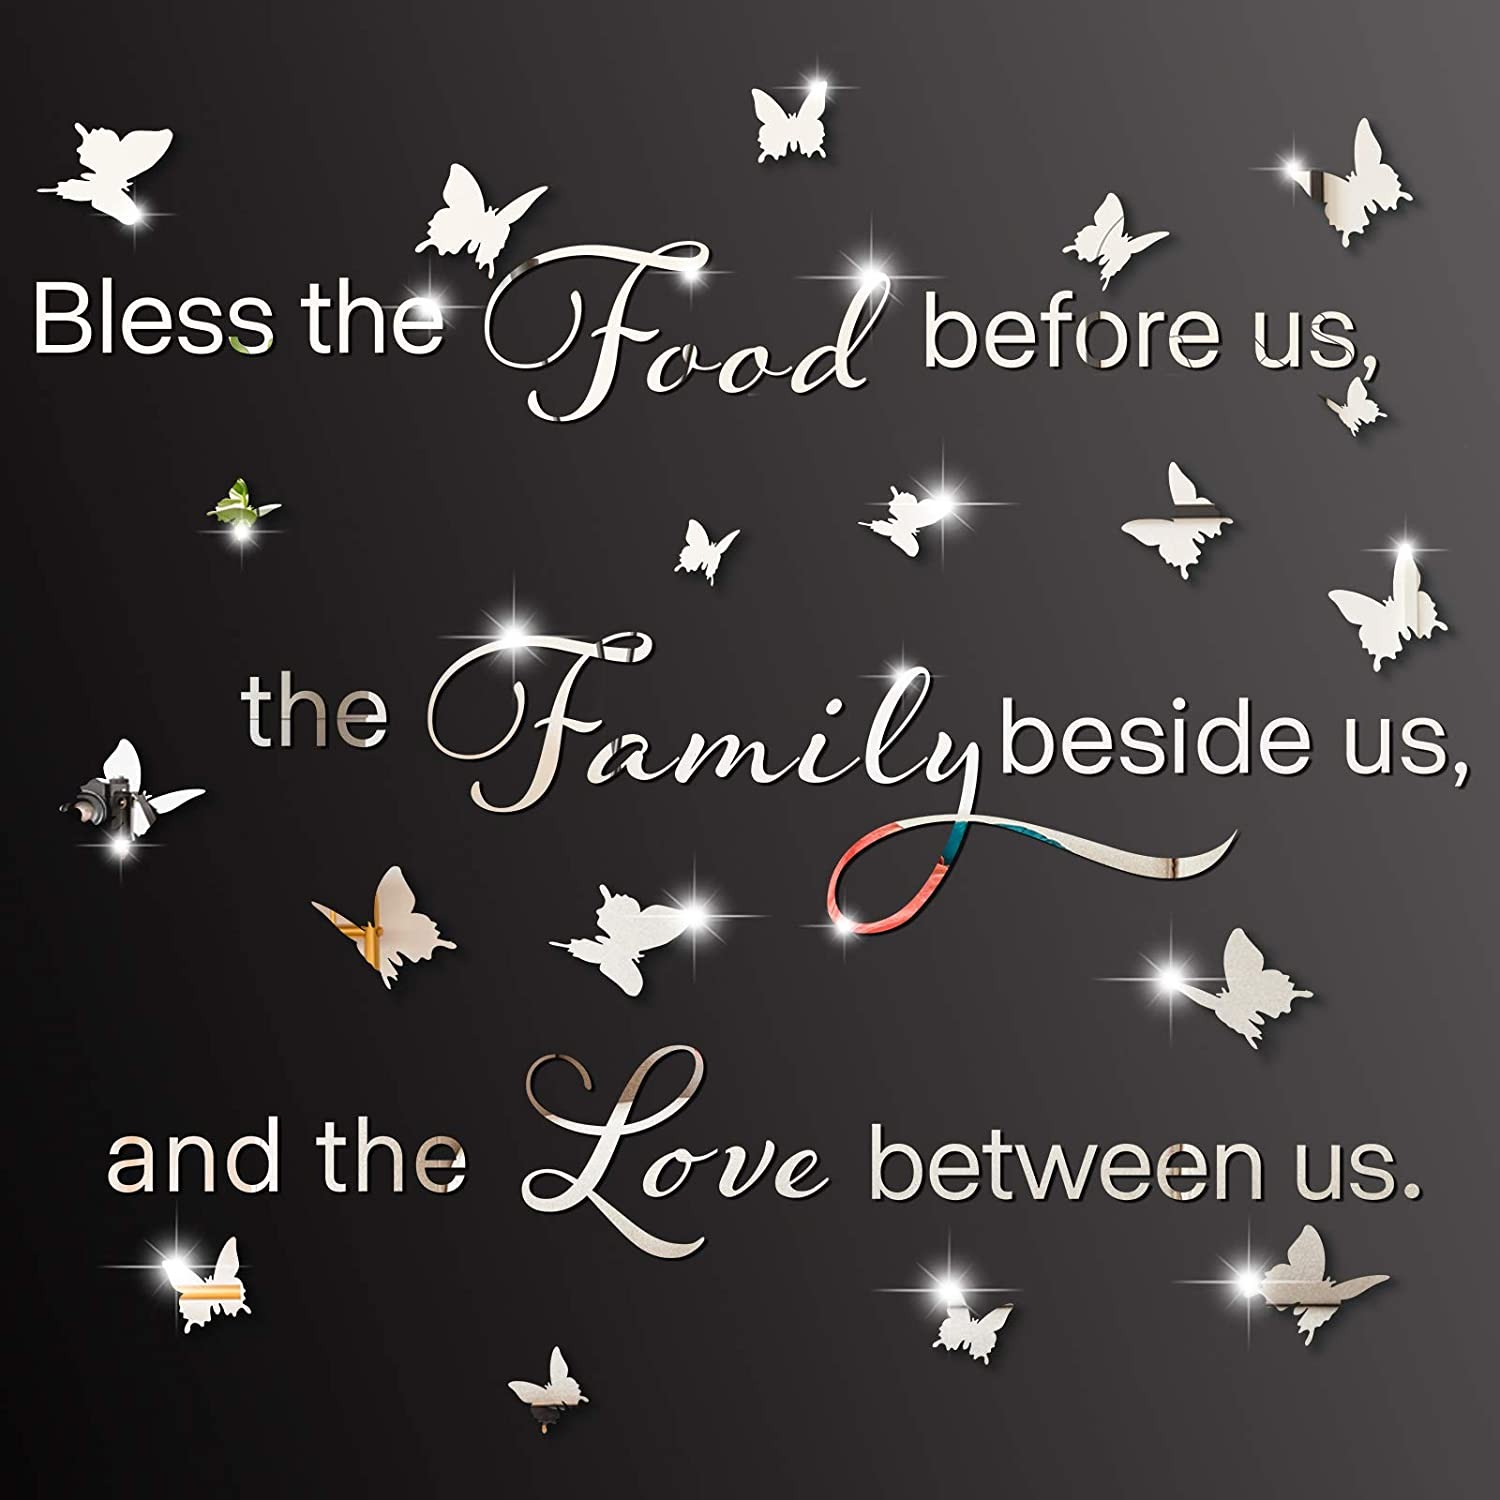 3D Acrylic Mirror Wall Decor Stickers Bless The Food Before Us The Family Beside Us and The Love Between Us Prayer Sticker Kitchen Dining Room Wall Stickers Removable Butterfly Mirror Stickers